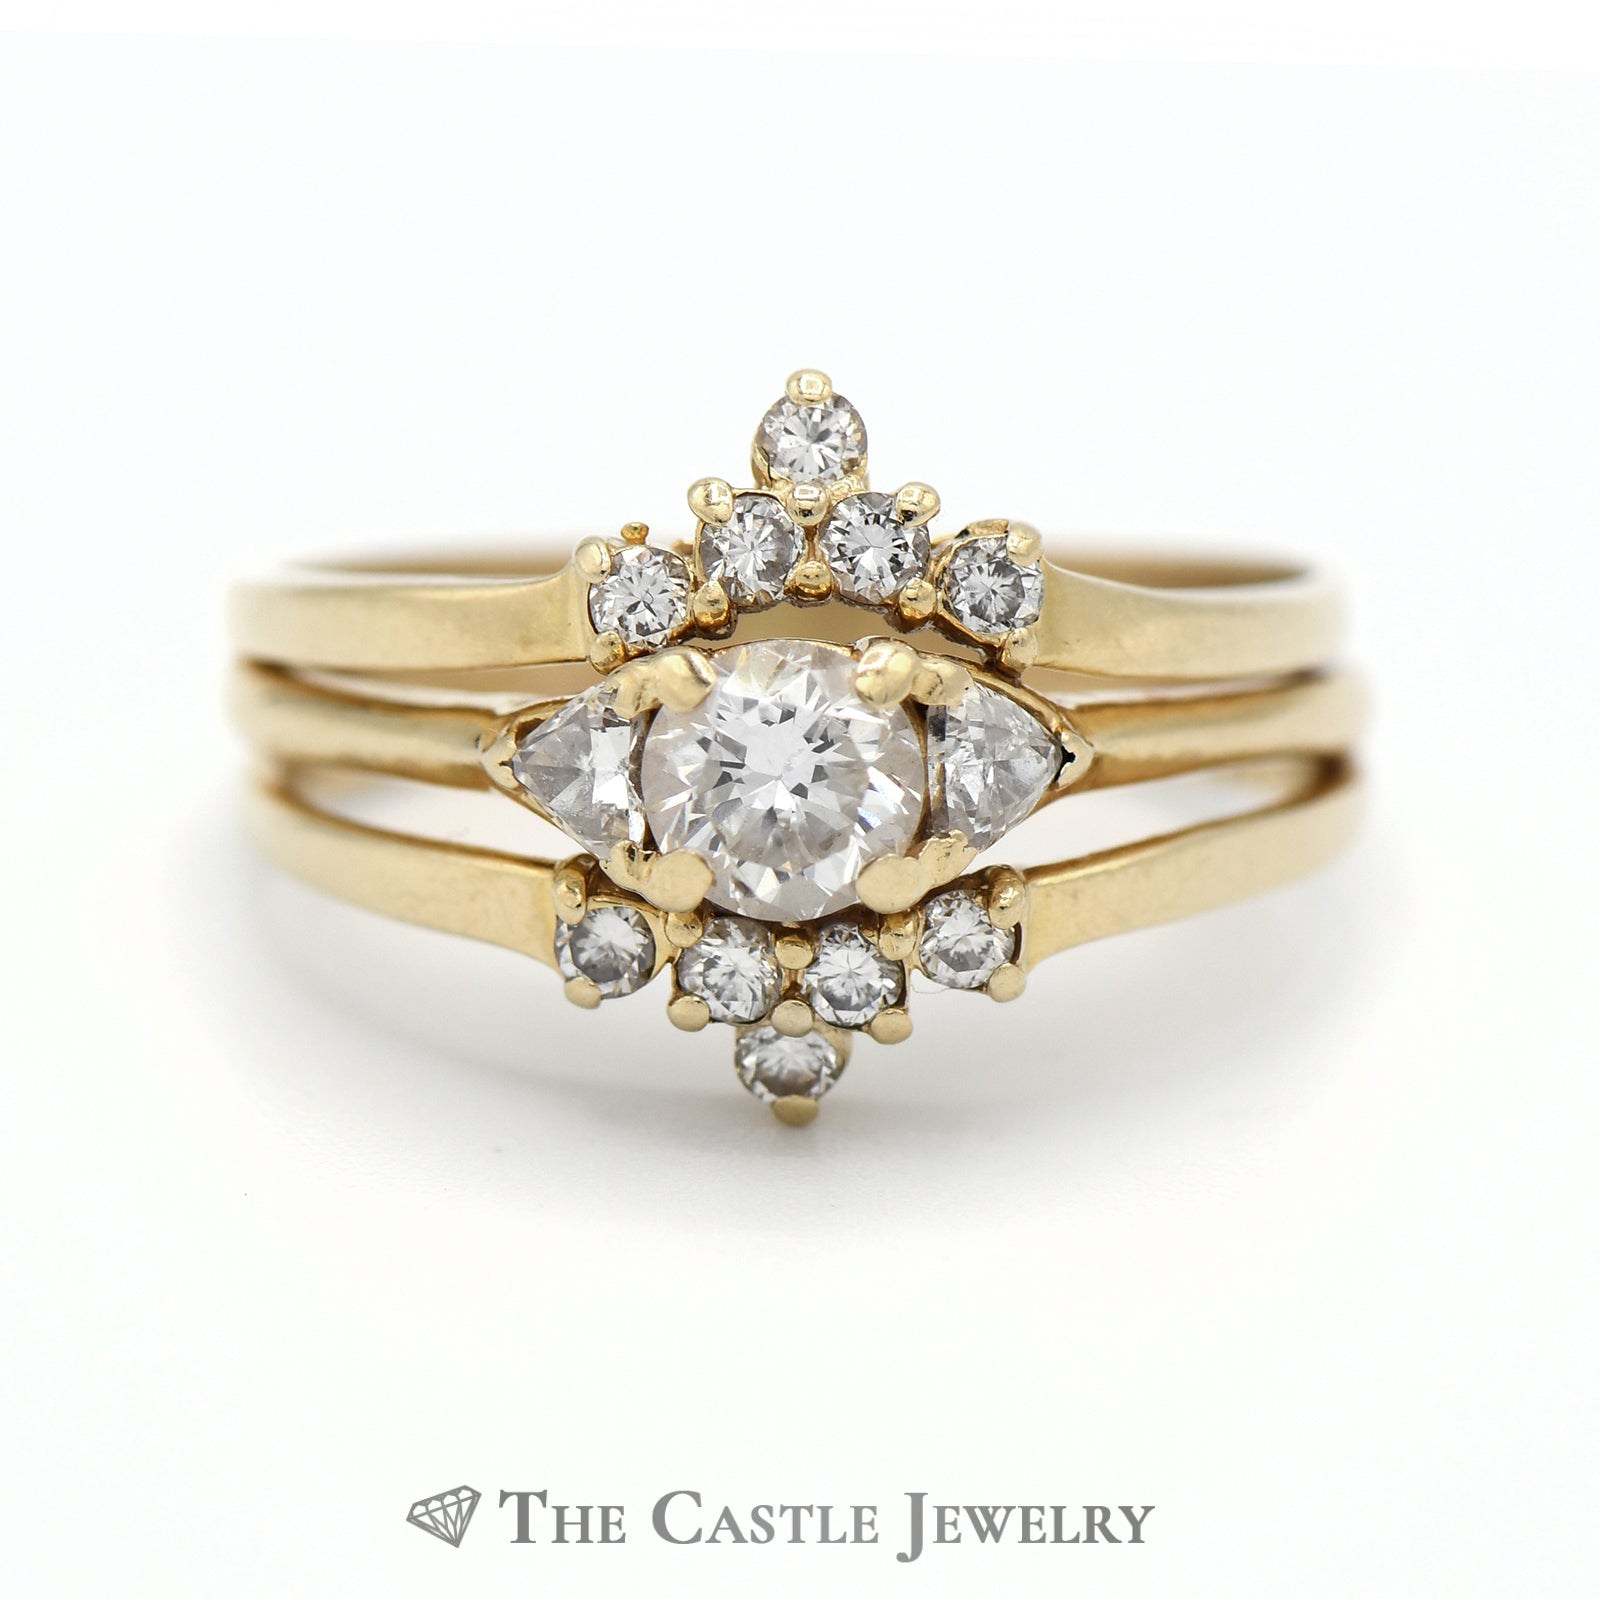 Diamond Bridal Set with Two Soldered Bands in 14k Yellow Gold